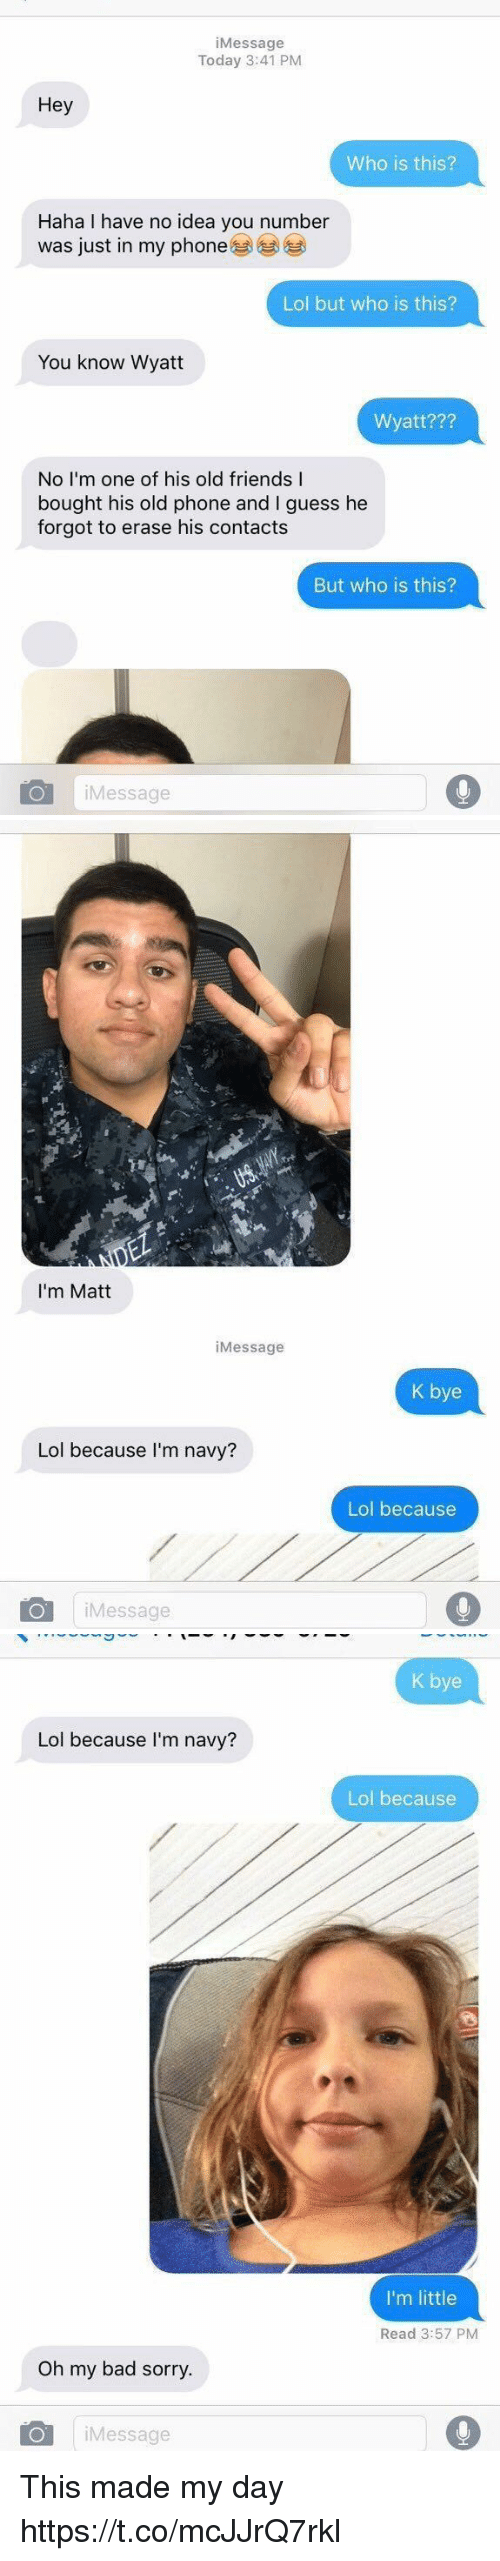 old friends: iMessage  Today 3:41 PM  Hey  Who is this?  Haha I have no idea you number  was just in my phone  Lol but who is this?  You know Wyatt  Wyatt???  No I'm one of his old friends I  bought his old phone and I guess he  forgot to erase his contacts  But who is this?  iMessage   I'm Matt  iMessage  K bye  Lol because I'm navy?  Lol because  iMessage   K bye  Lol because I'm navy?  Lol because  I'm little  Read 3:57 PM  Oh my bad sorry.  iMessage This made my day https://t.co/mcJJrQ7rkl